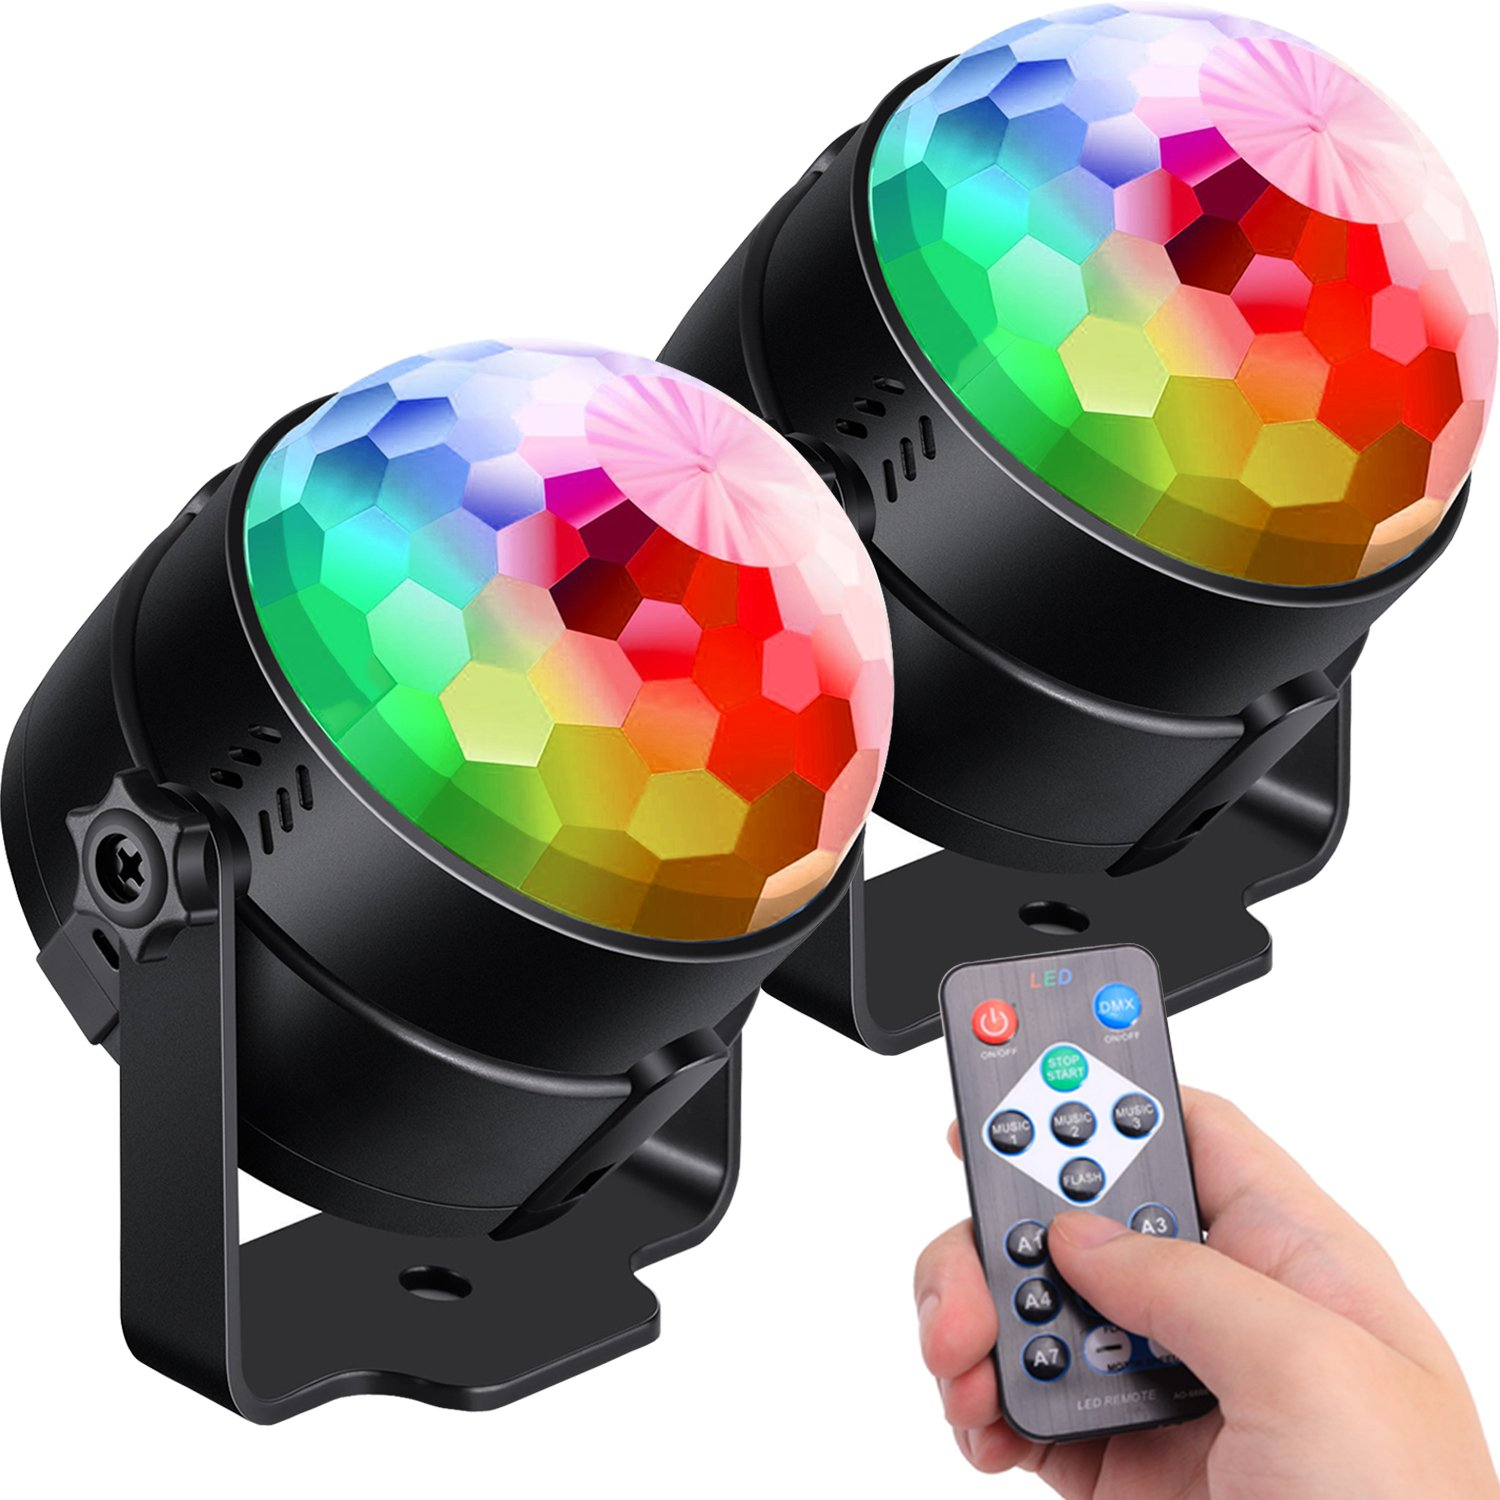 [2-Pack] Sound Activated Party Lights with Remote Control Dj Lighting, RBG Disco Ball Light, Strobe Lamp 7 Modes Stage Par Light for Home Room Dance Parties Bar Karaoke Xmas Wedding Show Club by Luditek